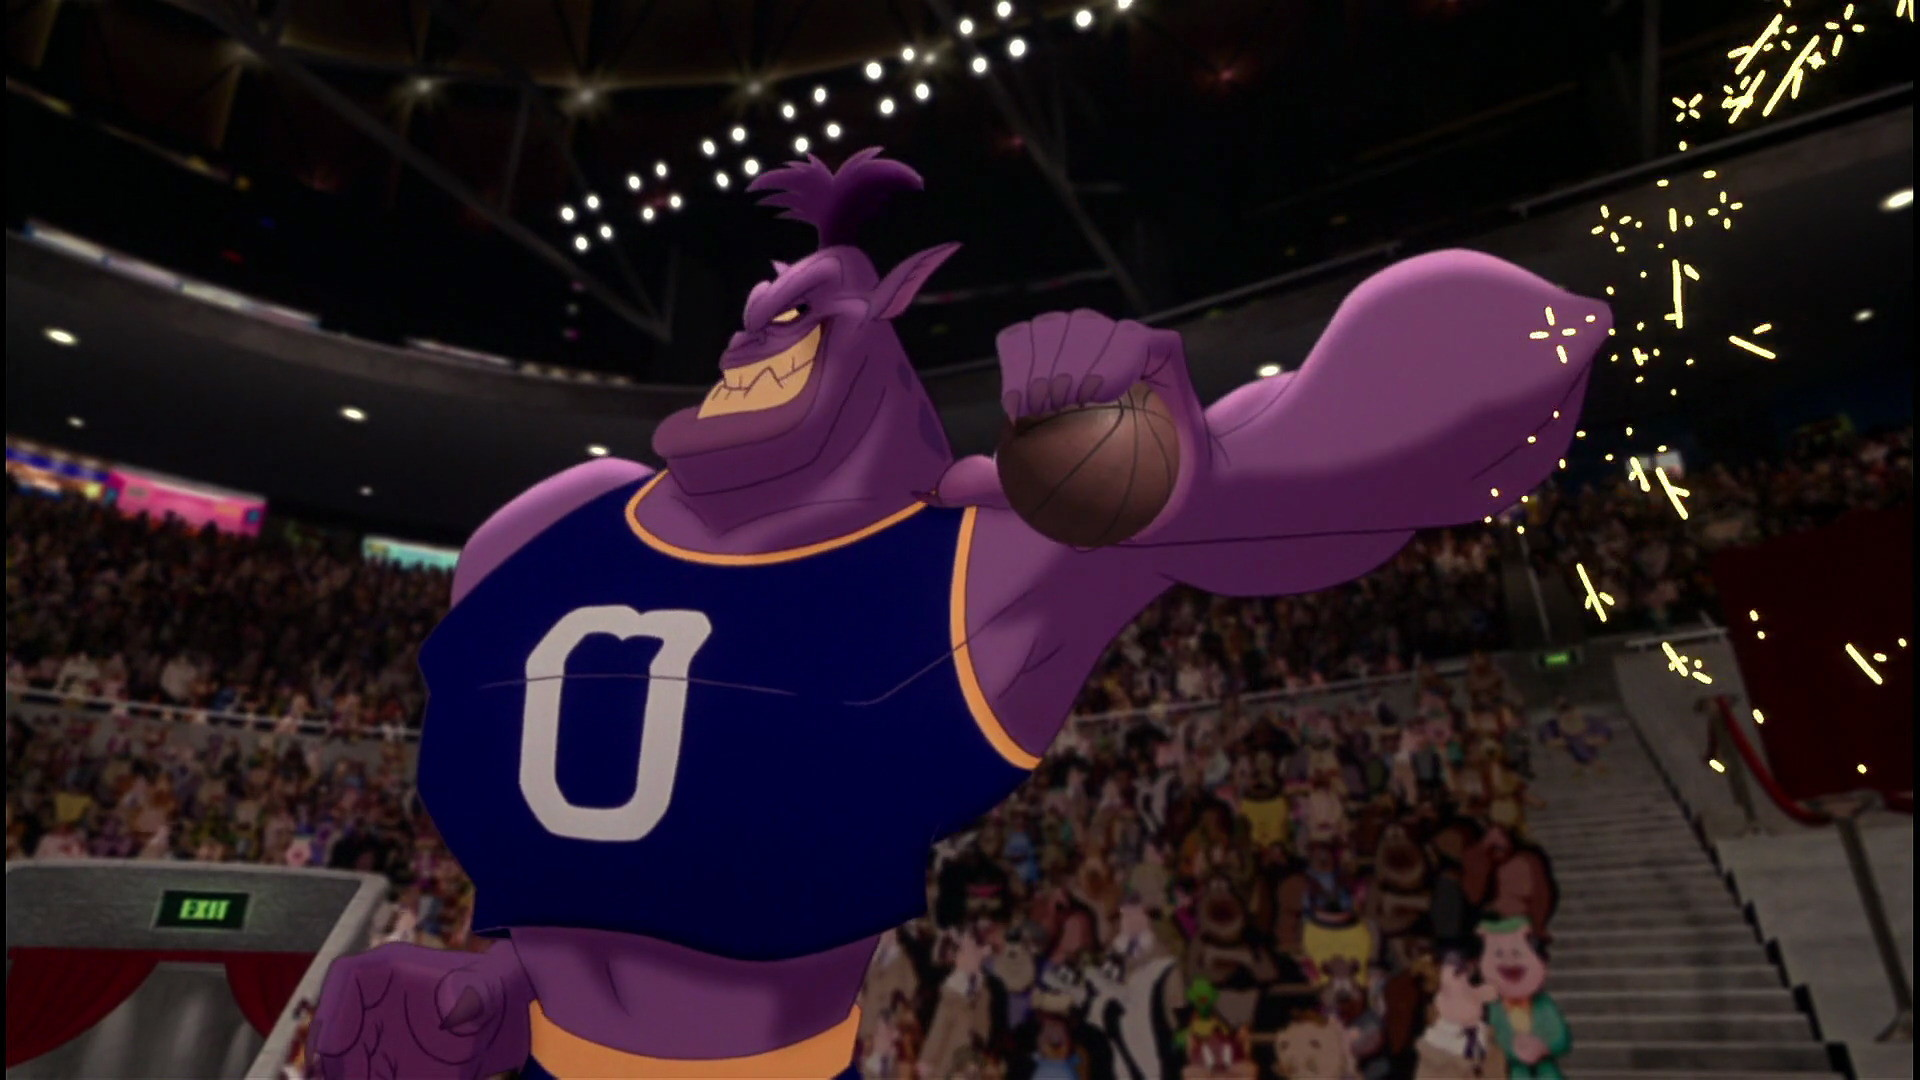 Bupkus, Bang, Bugs Bunny, Marvin Martian, Lola Bunny, Daffy Duck & many  more at the premiere of Space Jam. | Monstars Bupkus | Pinterest | Space jam,  …